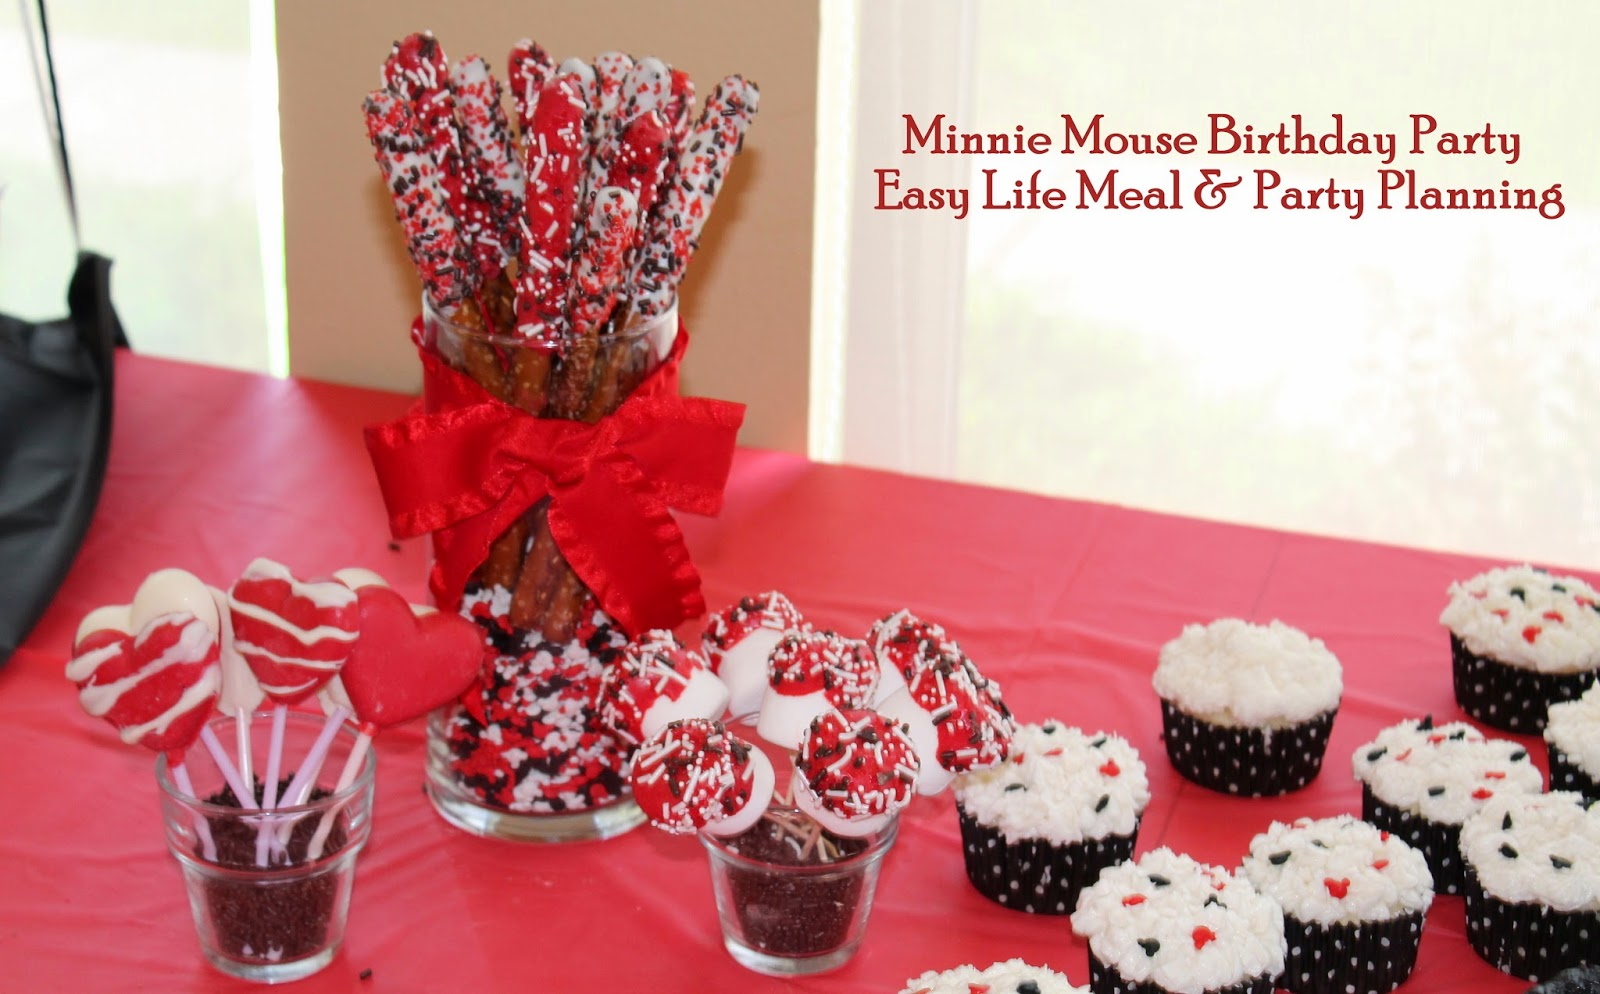 It's a Party - Minnie Mouse Birthday Party - Easy Life Meal & Party Planning